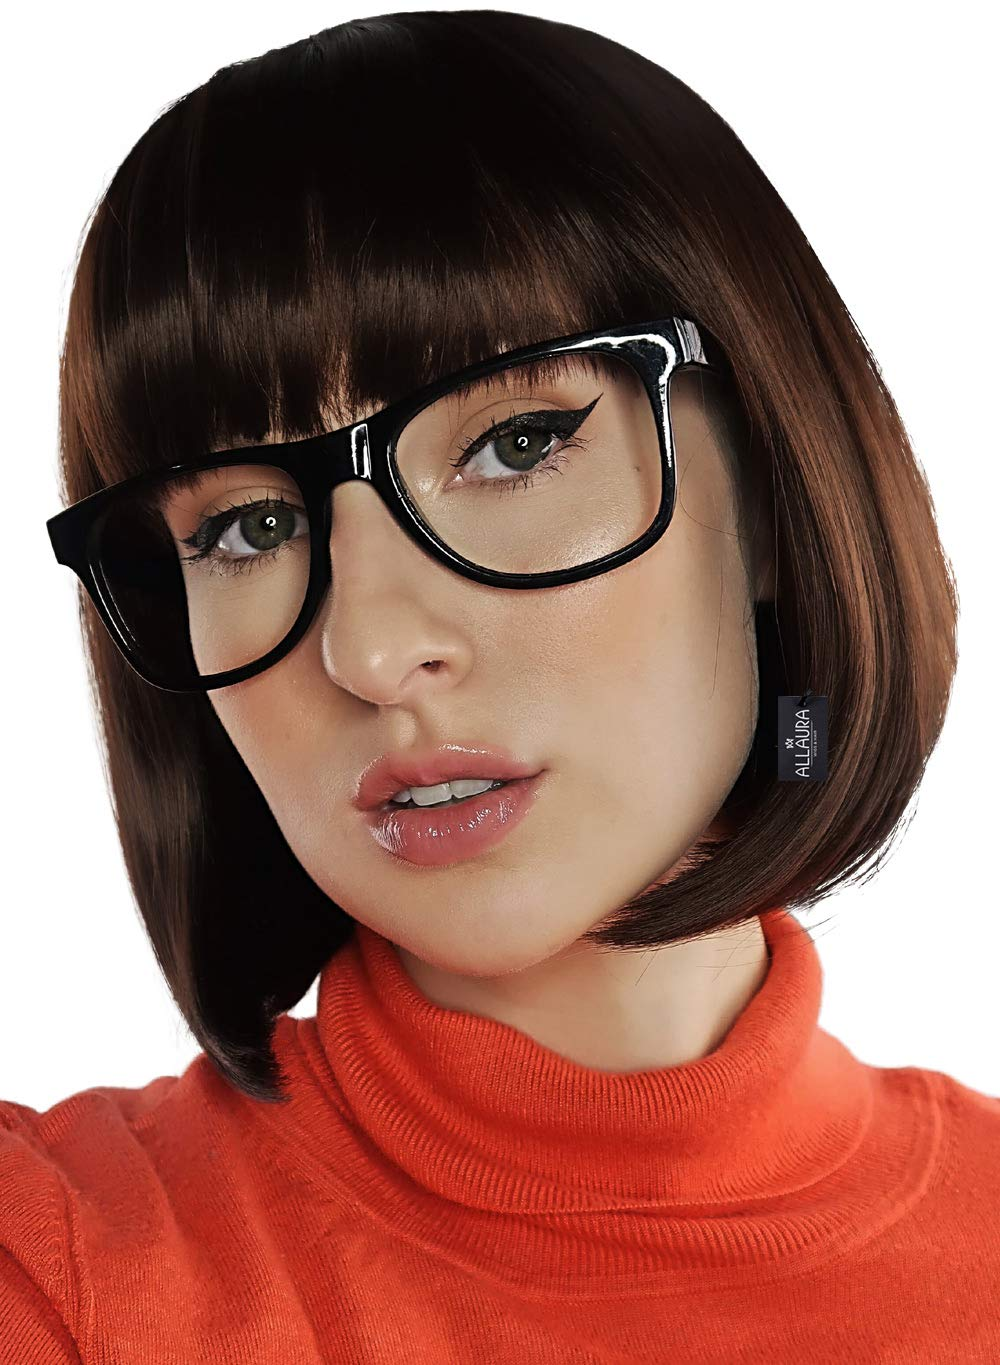 Brown Bob & Black Glasses Costume Set Cosplay Flapper Wigs With Bangs Fits Womens & Girls